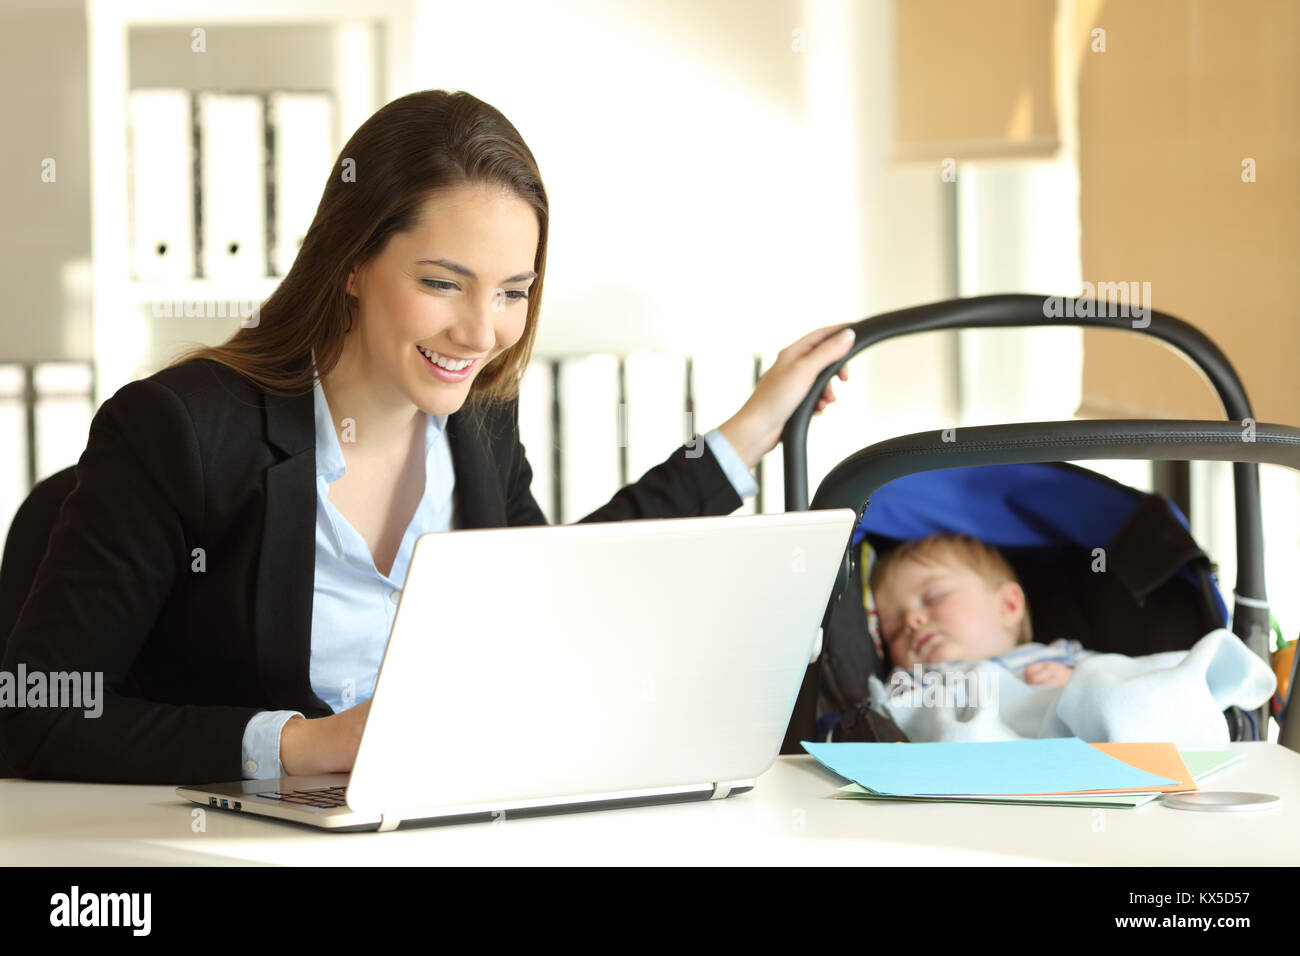 Happy single mother working on line and taking care of her baby at office - Stock Image